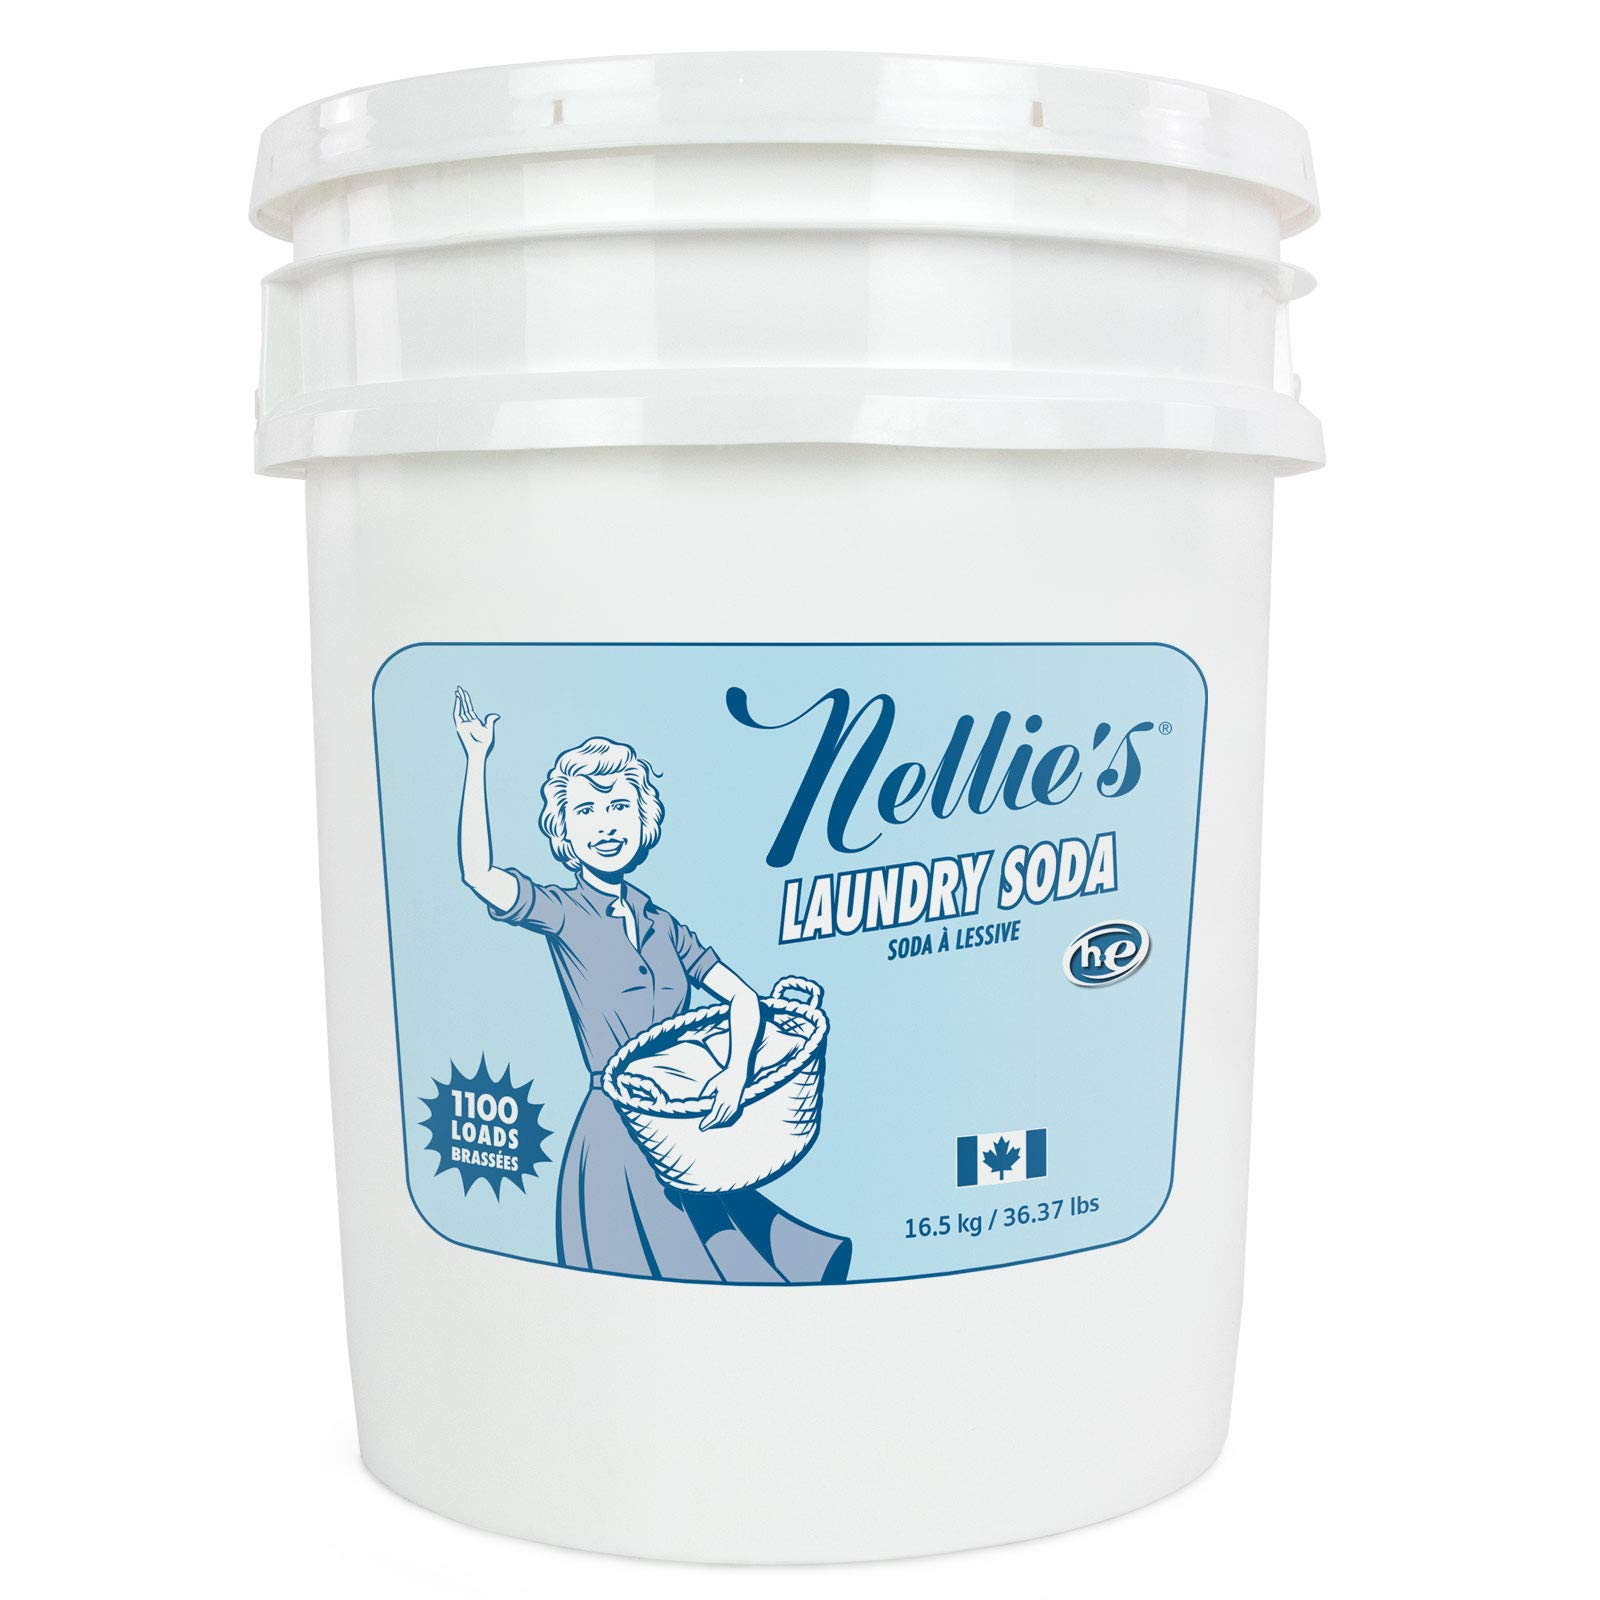 Nellie's Laundry Soda - 1100 Load Laundry Bucket by Nellie's